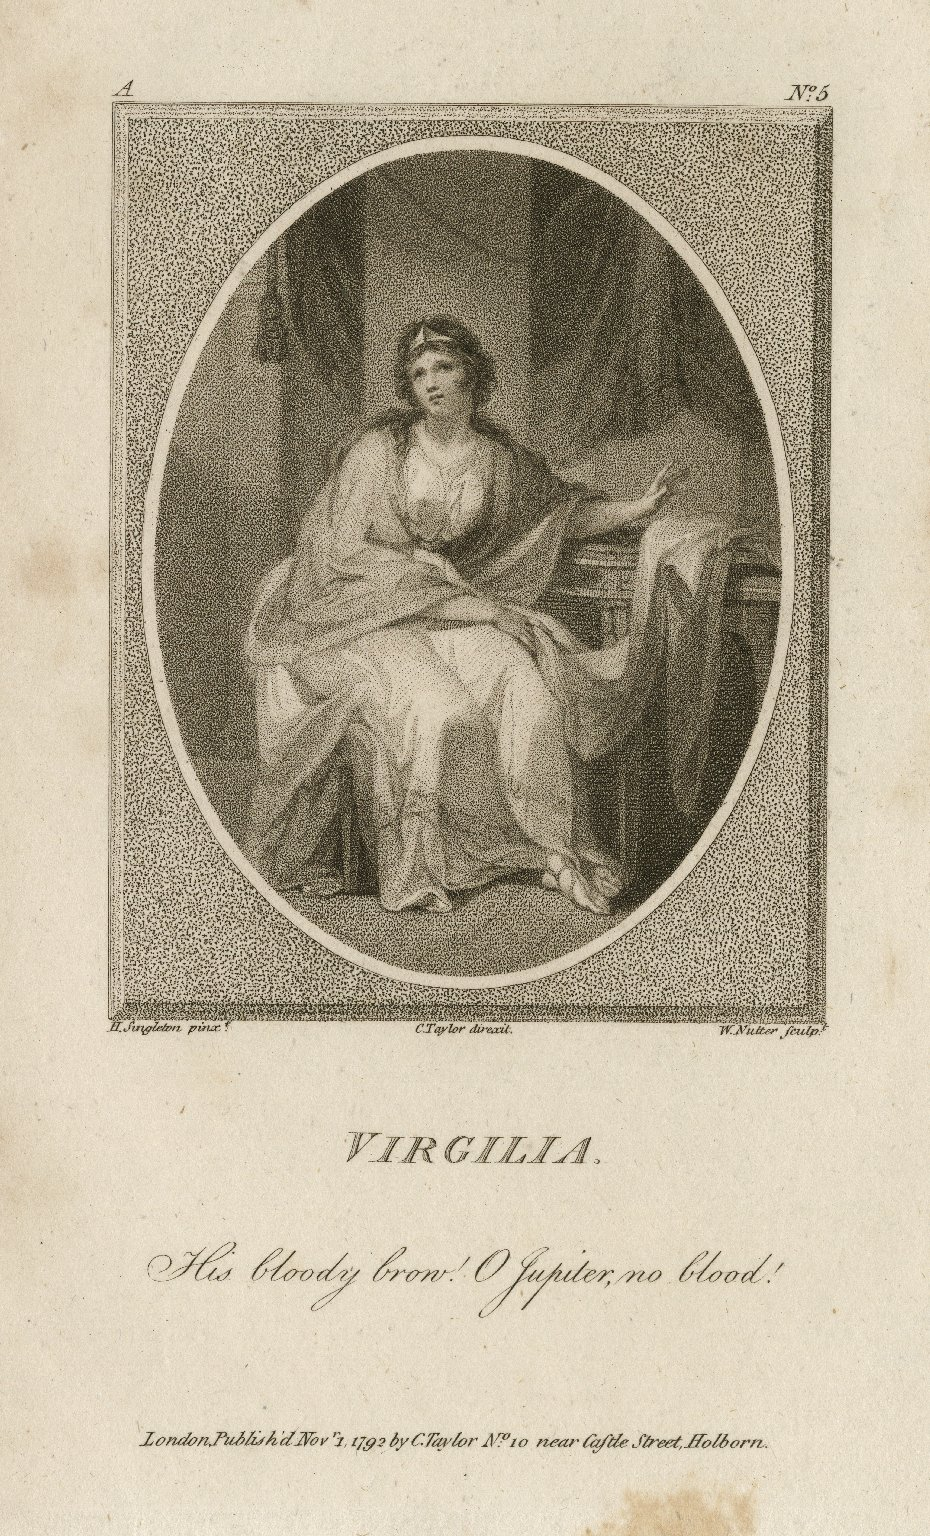 Virgilia [character in Coriolanus]: His bloody brow! O Jupiter, no blood! [graphic] / H. Singleton, inxt. ; C. Taylor, dirext. ; W. Nutter, sculpt.